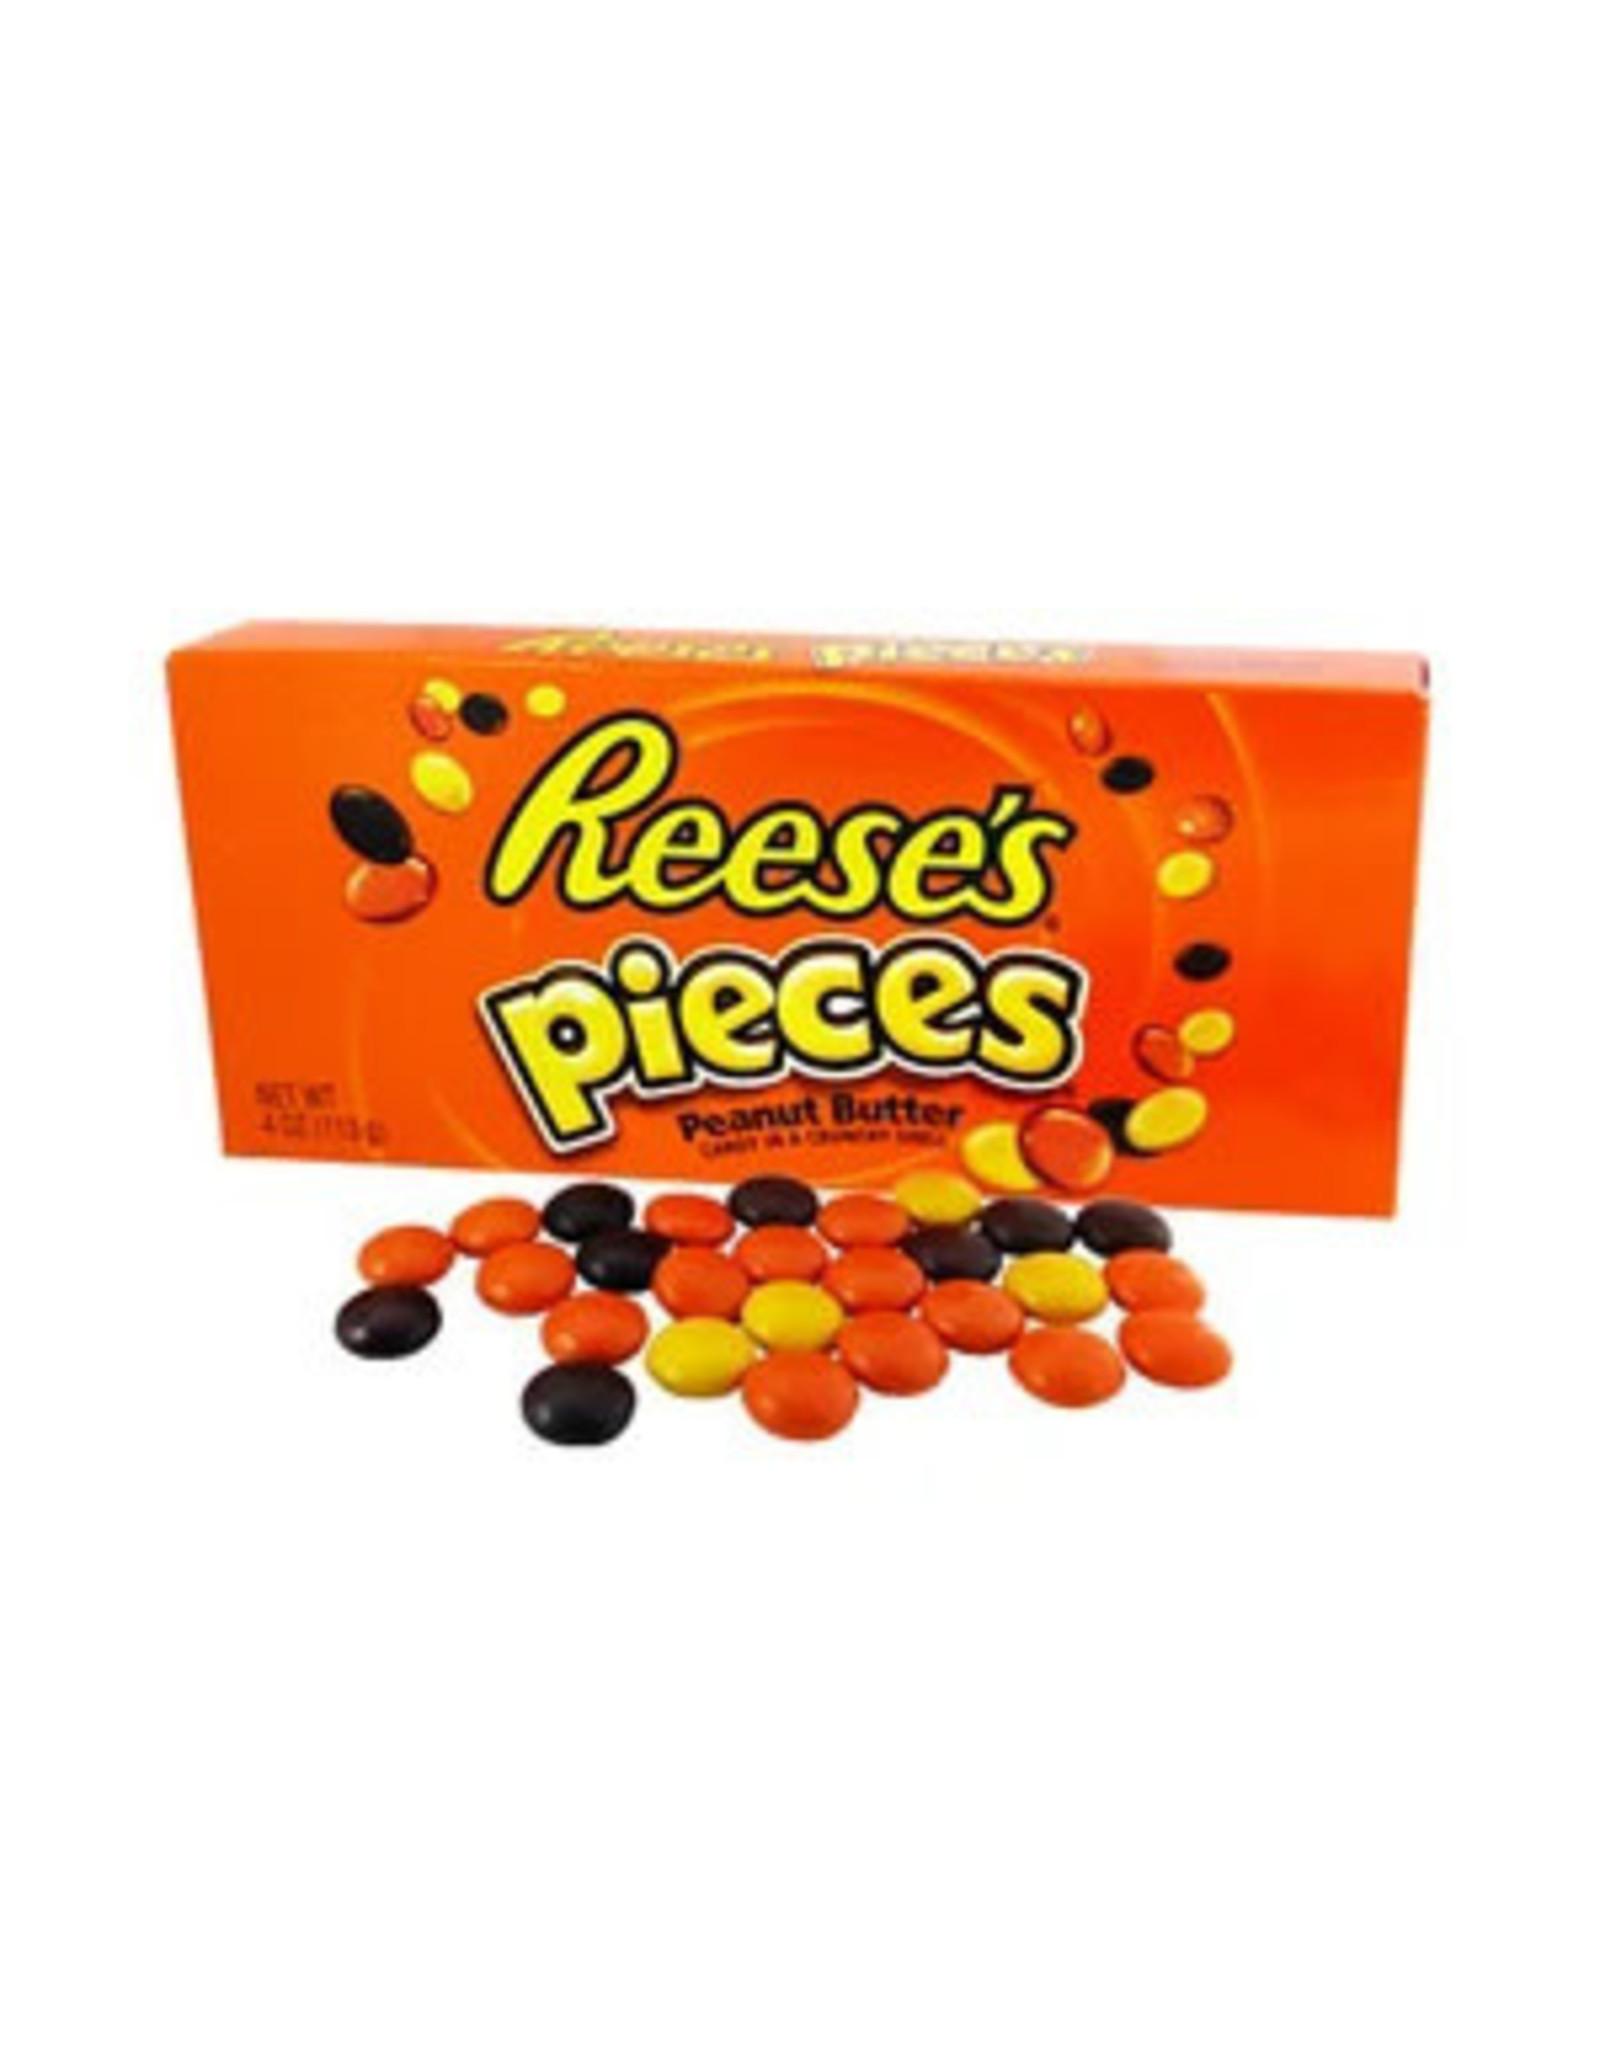 Reese's Pieces - Peanut Butter Candy in a Crunchy Shell - 113g